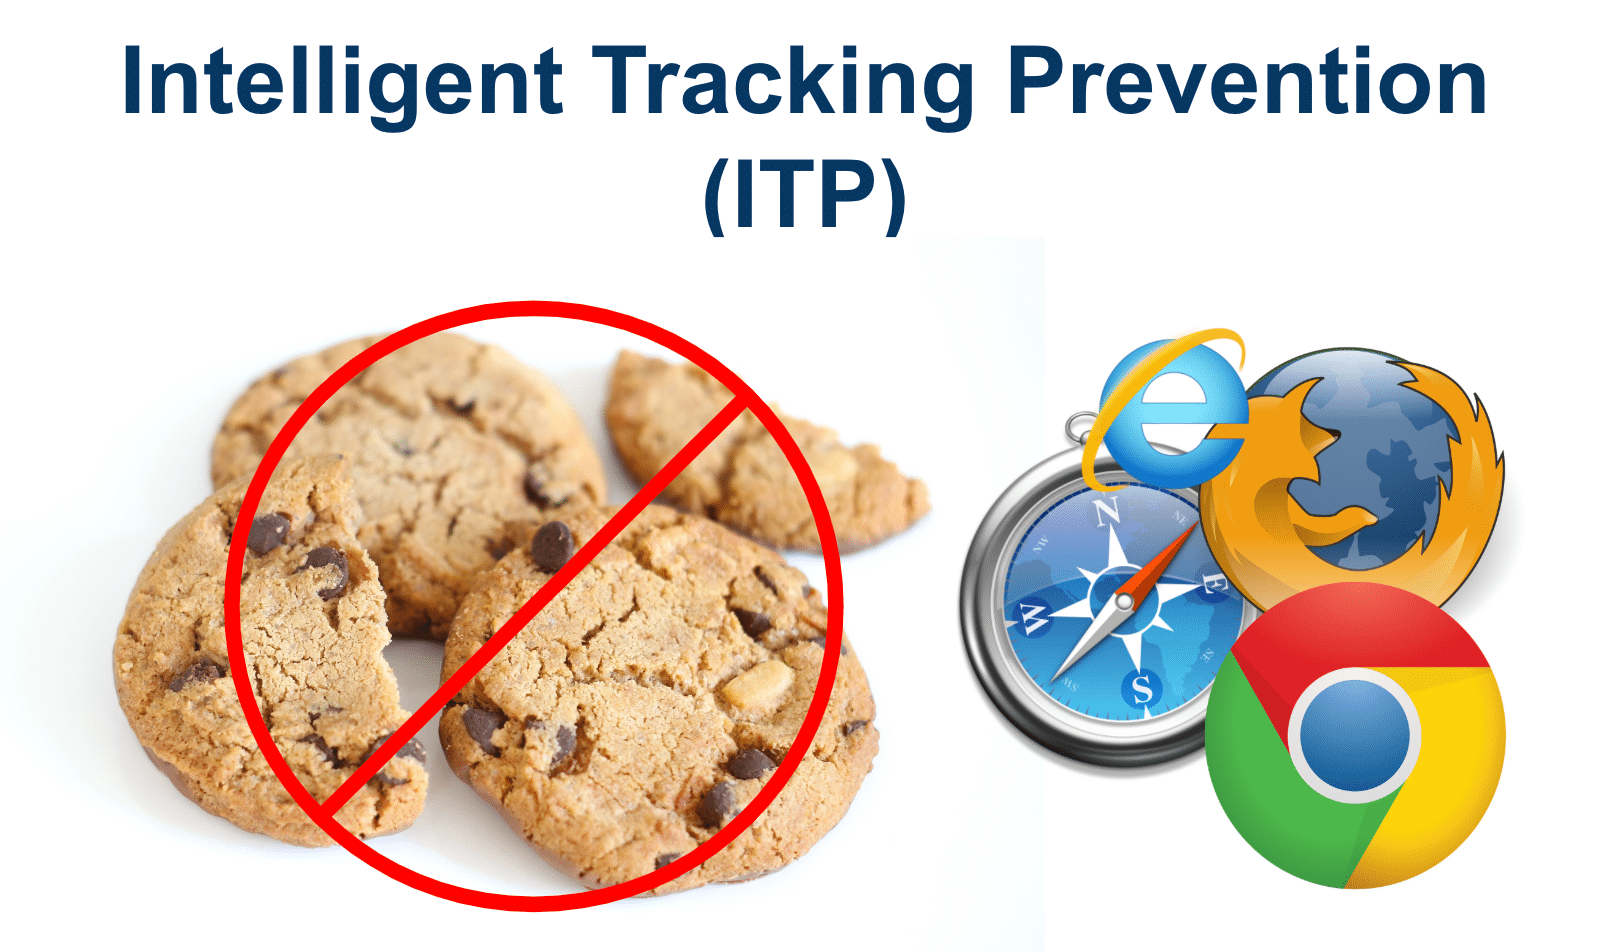 Intelligent Tracking Prevention ITP